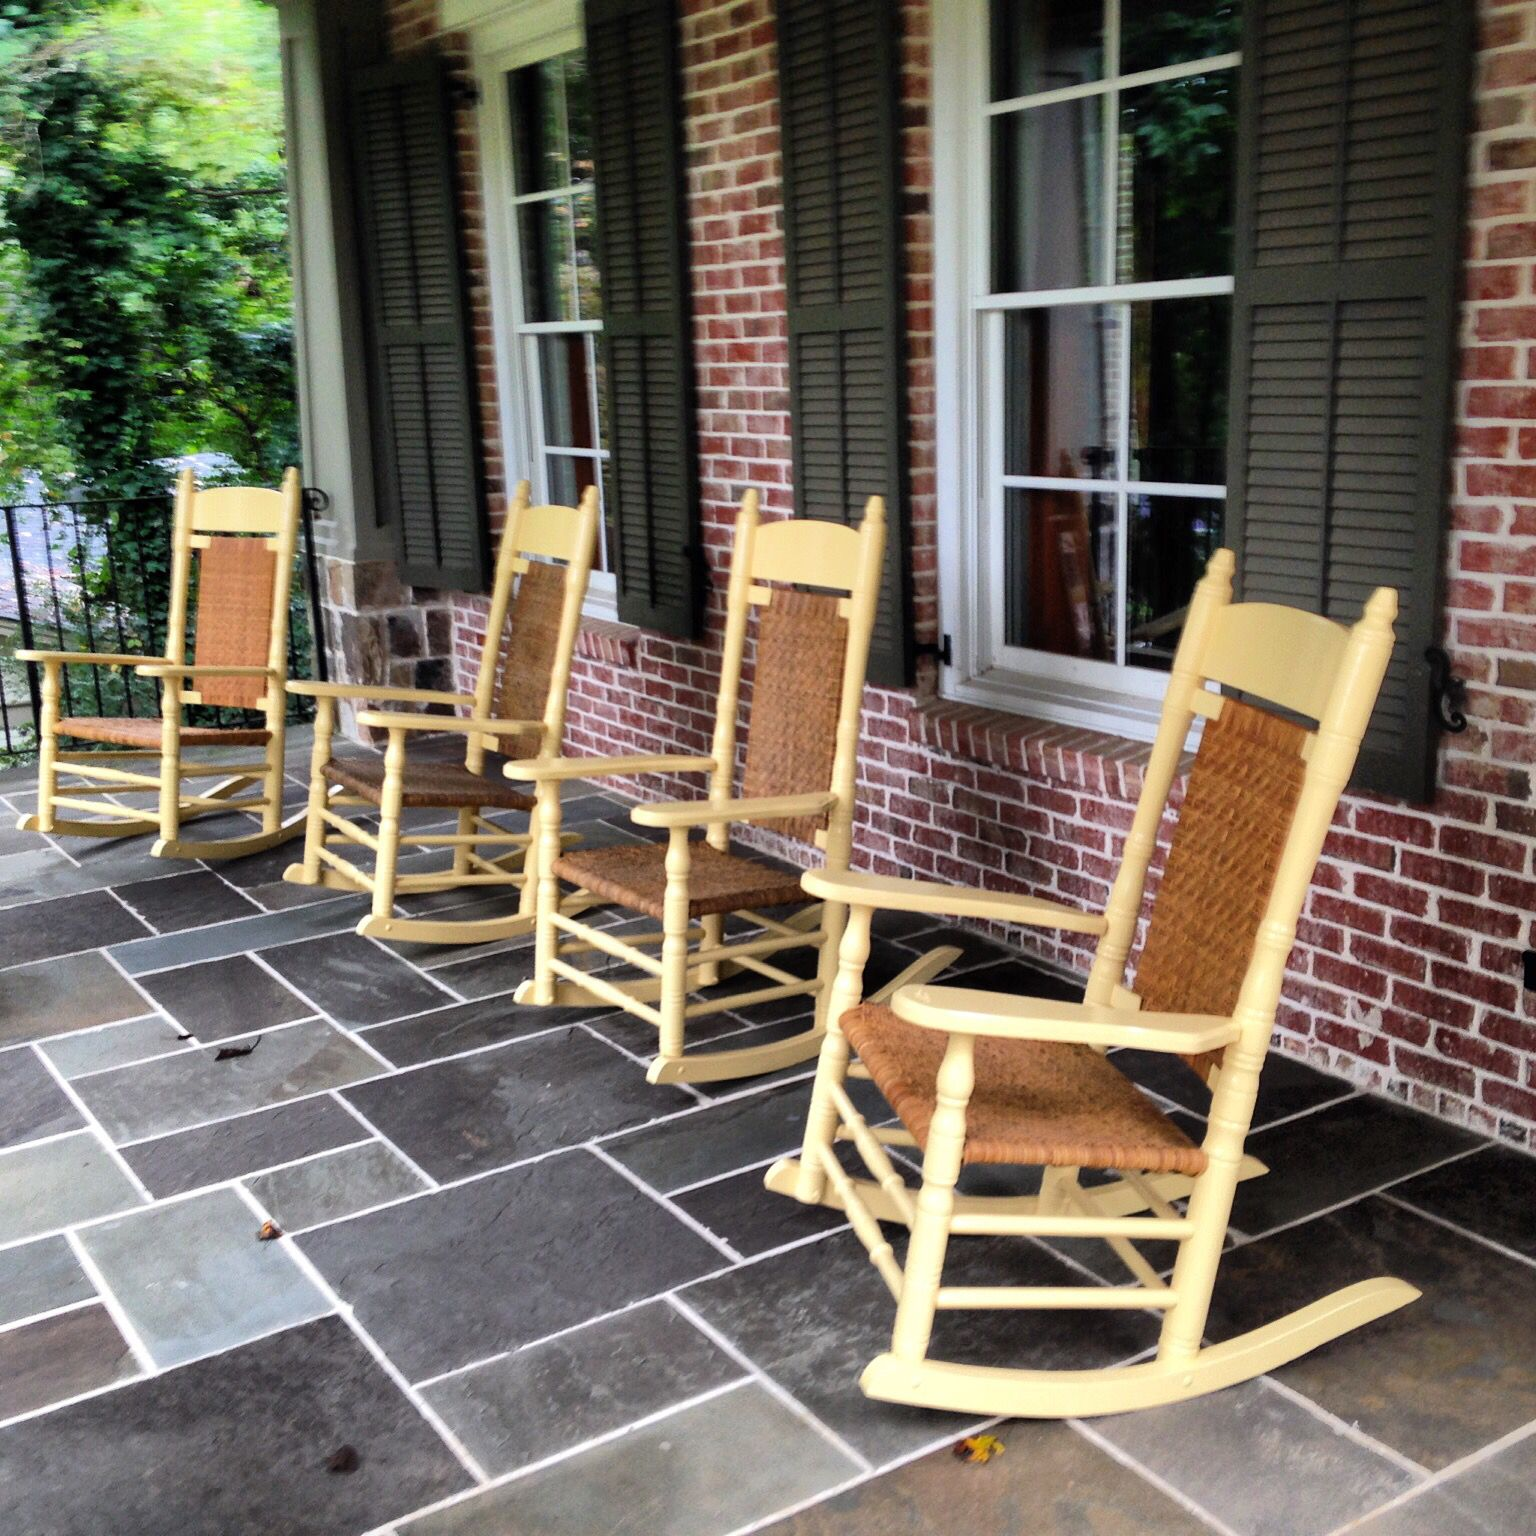 Brumby Rocking Chair in custom yellow Brumby Rocking chairs are